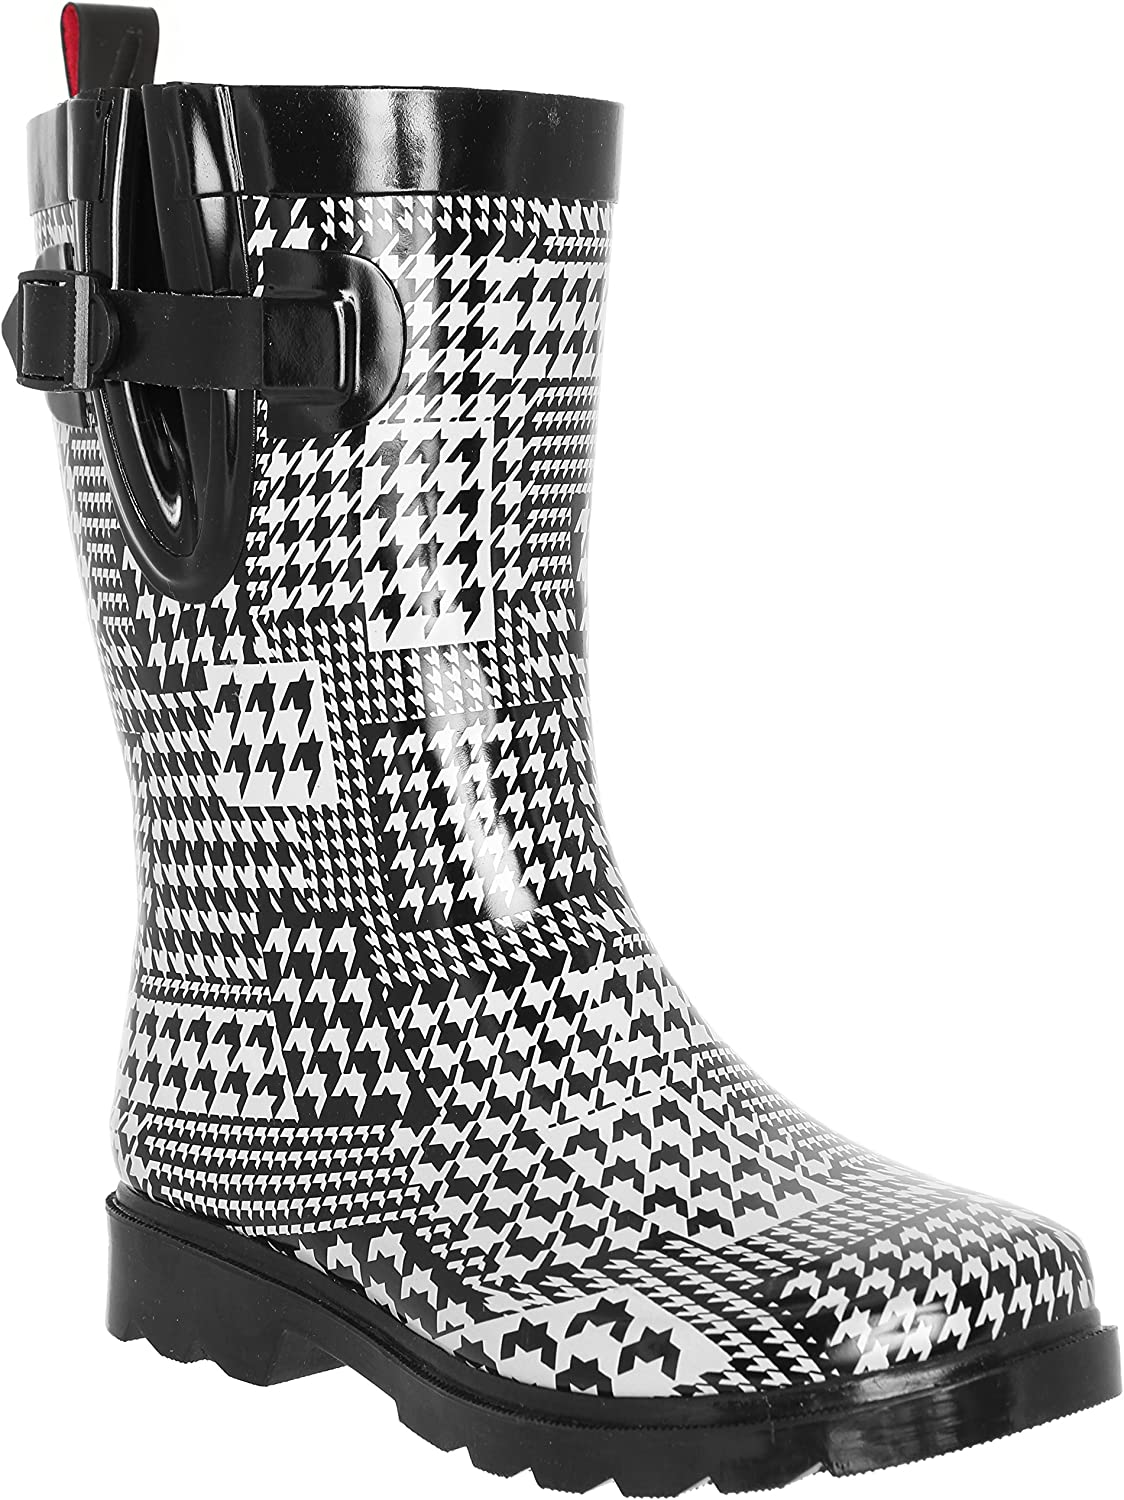 Capelli New York Ladies Shiny, Fanciful Paisley Printed Mid Calf Rain Boots